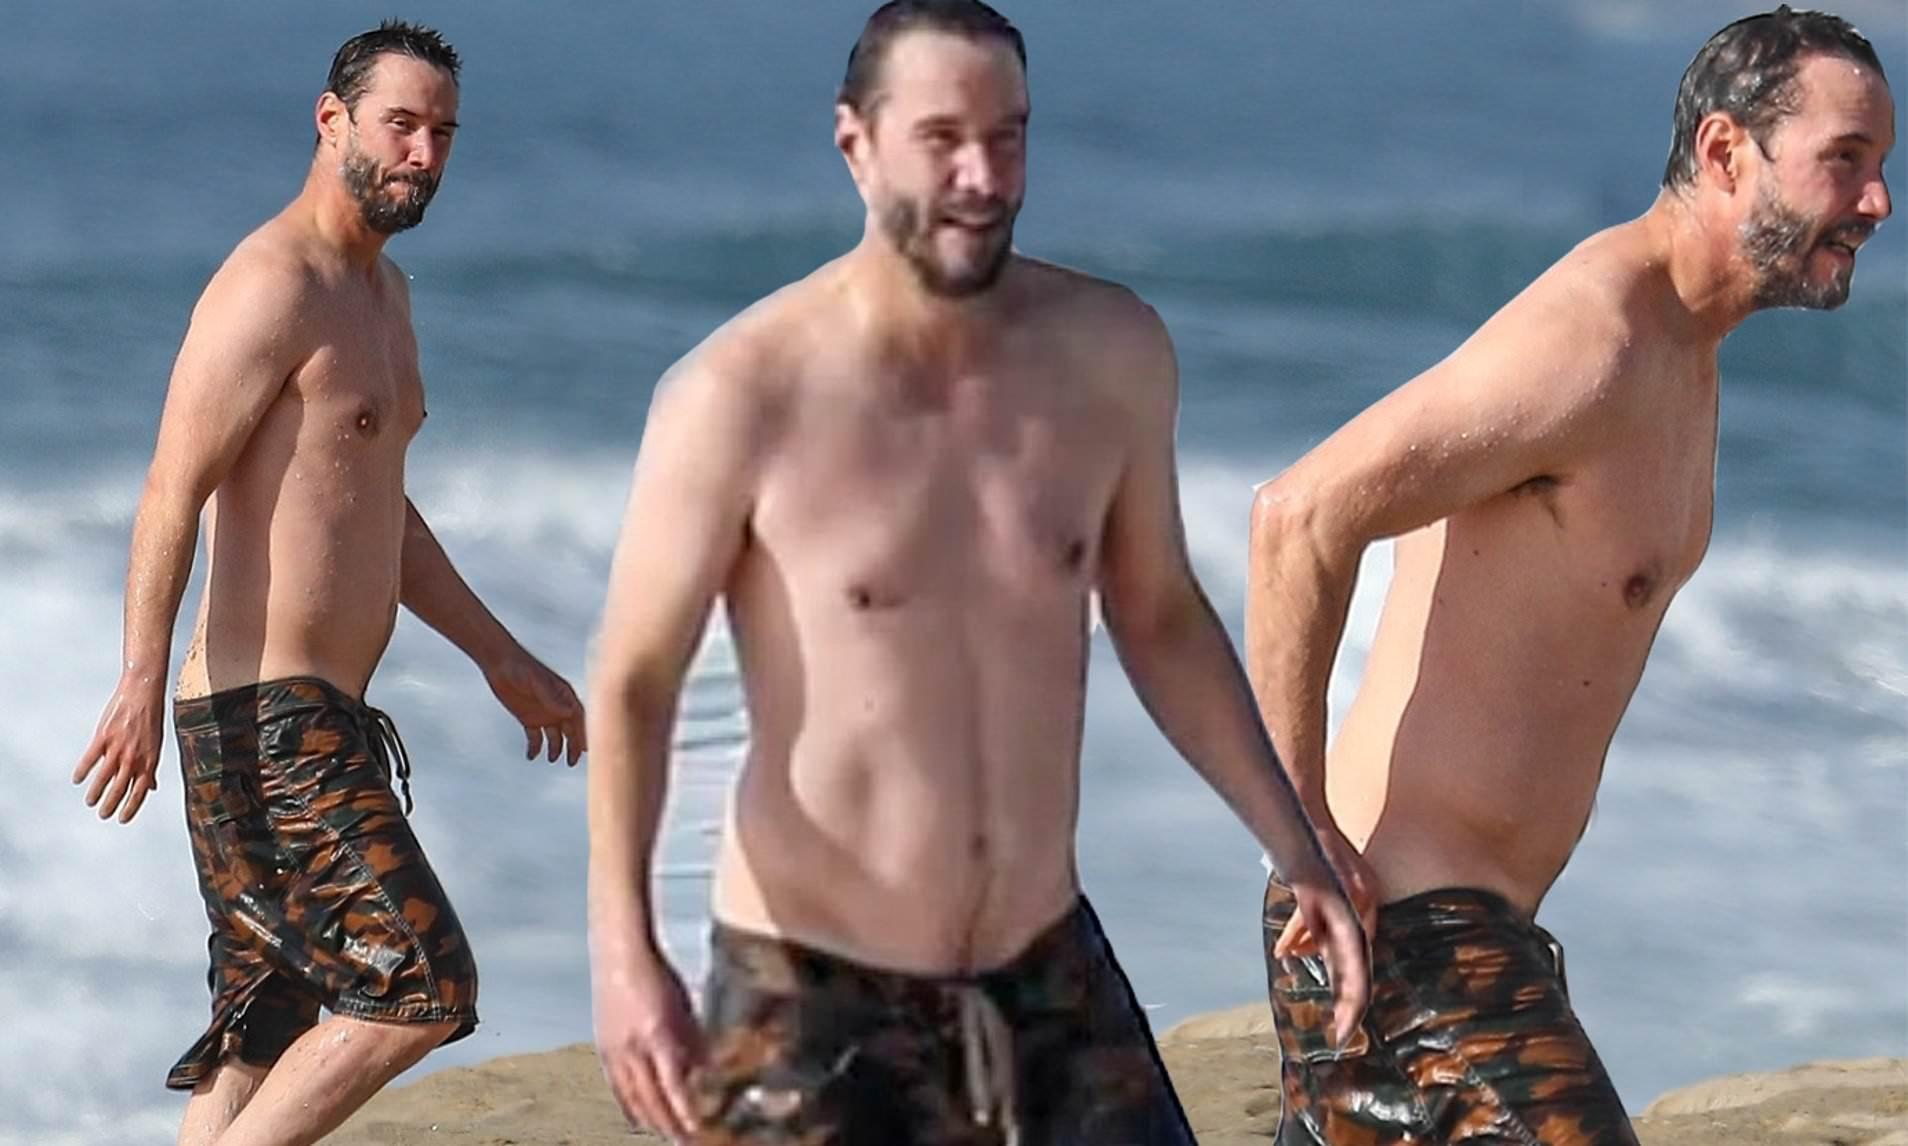 Keanu Reeves, 56, showed off his great physique while swimming in the freezing cold ocean!